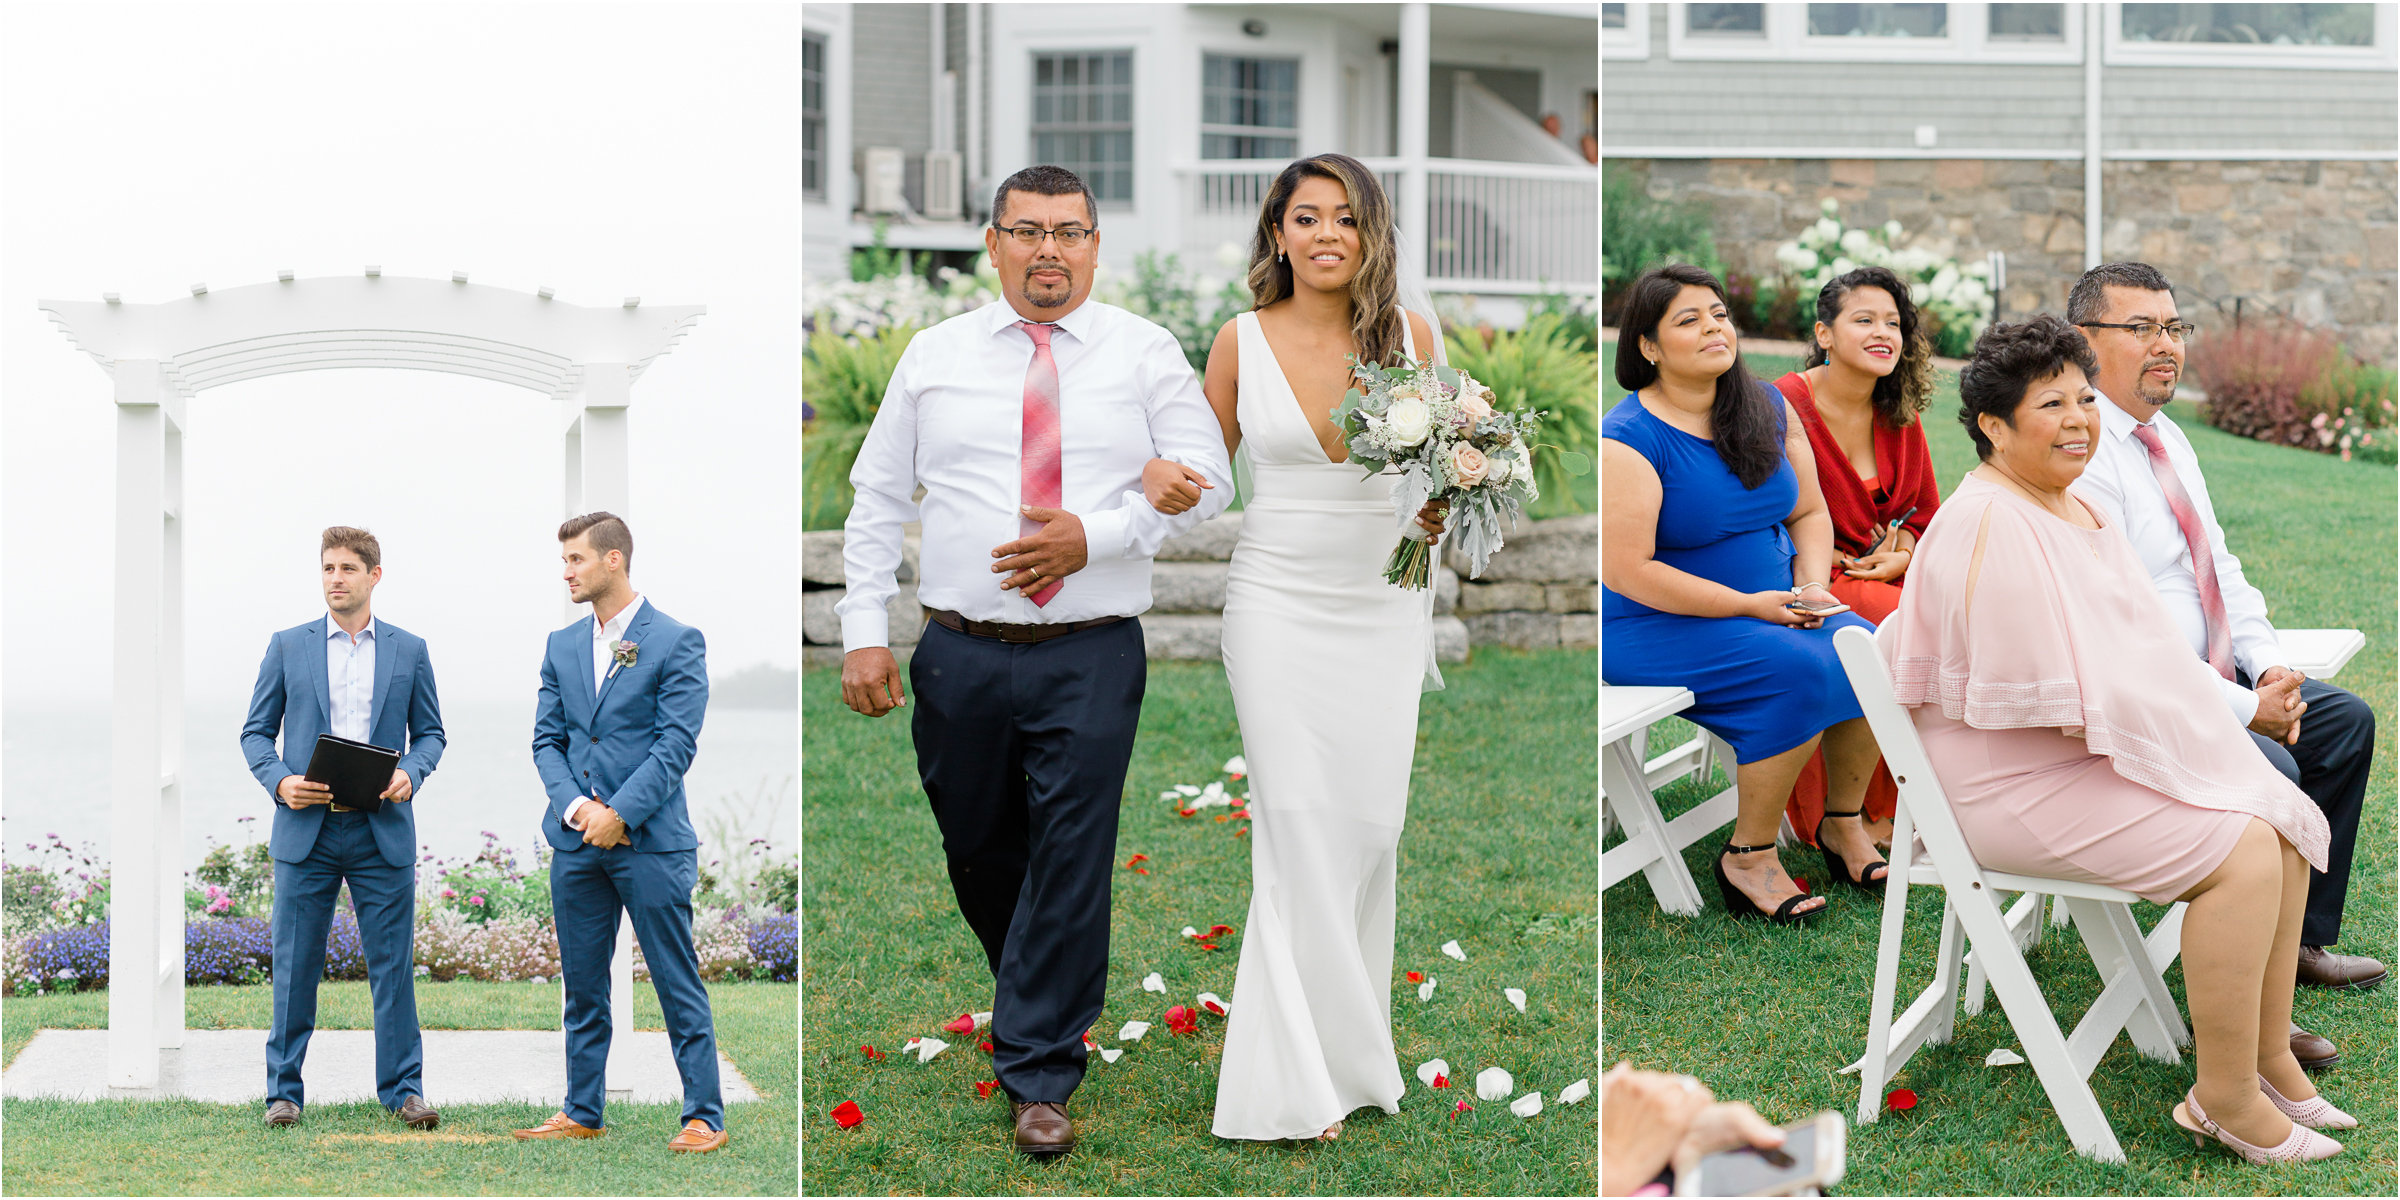 New England Wedding Photographer 8.jpg